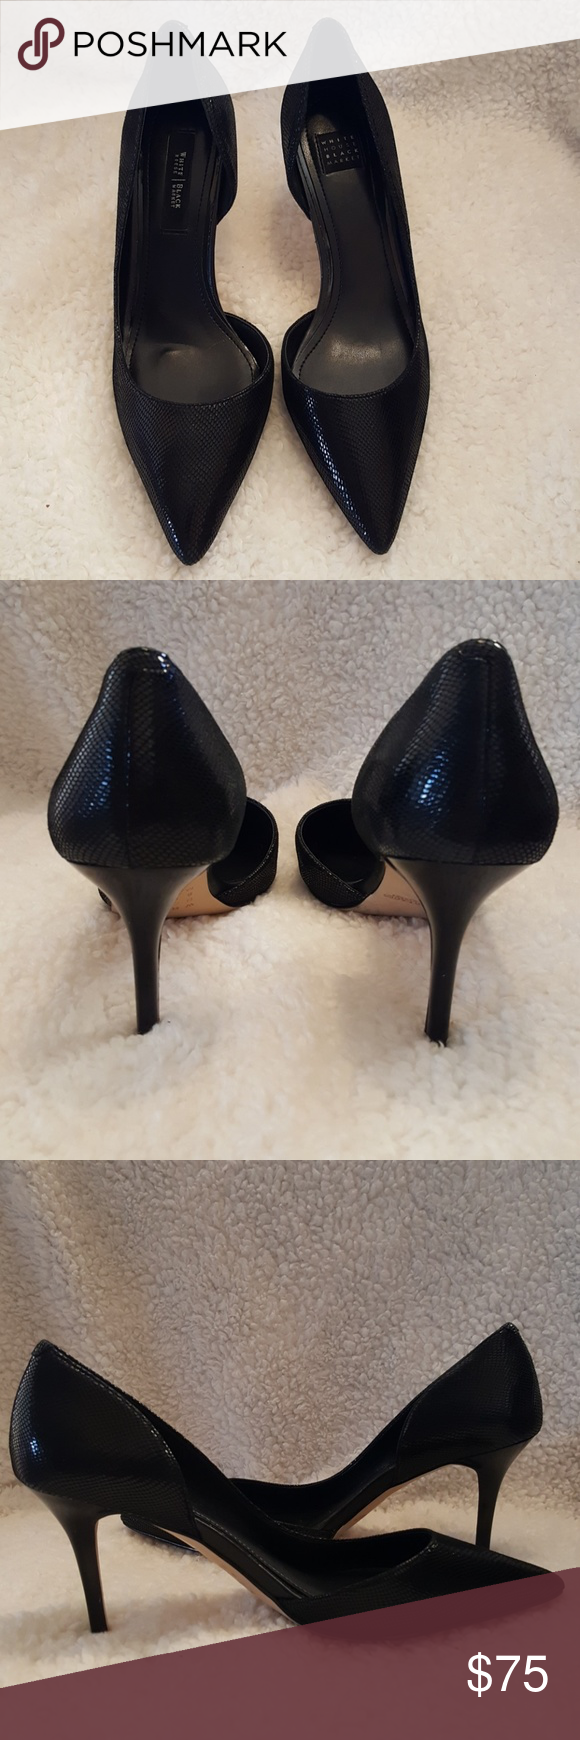 7b100f5cd6 White House Black Market sexy D'Orsay black heels These black Ella D'Orsay